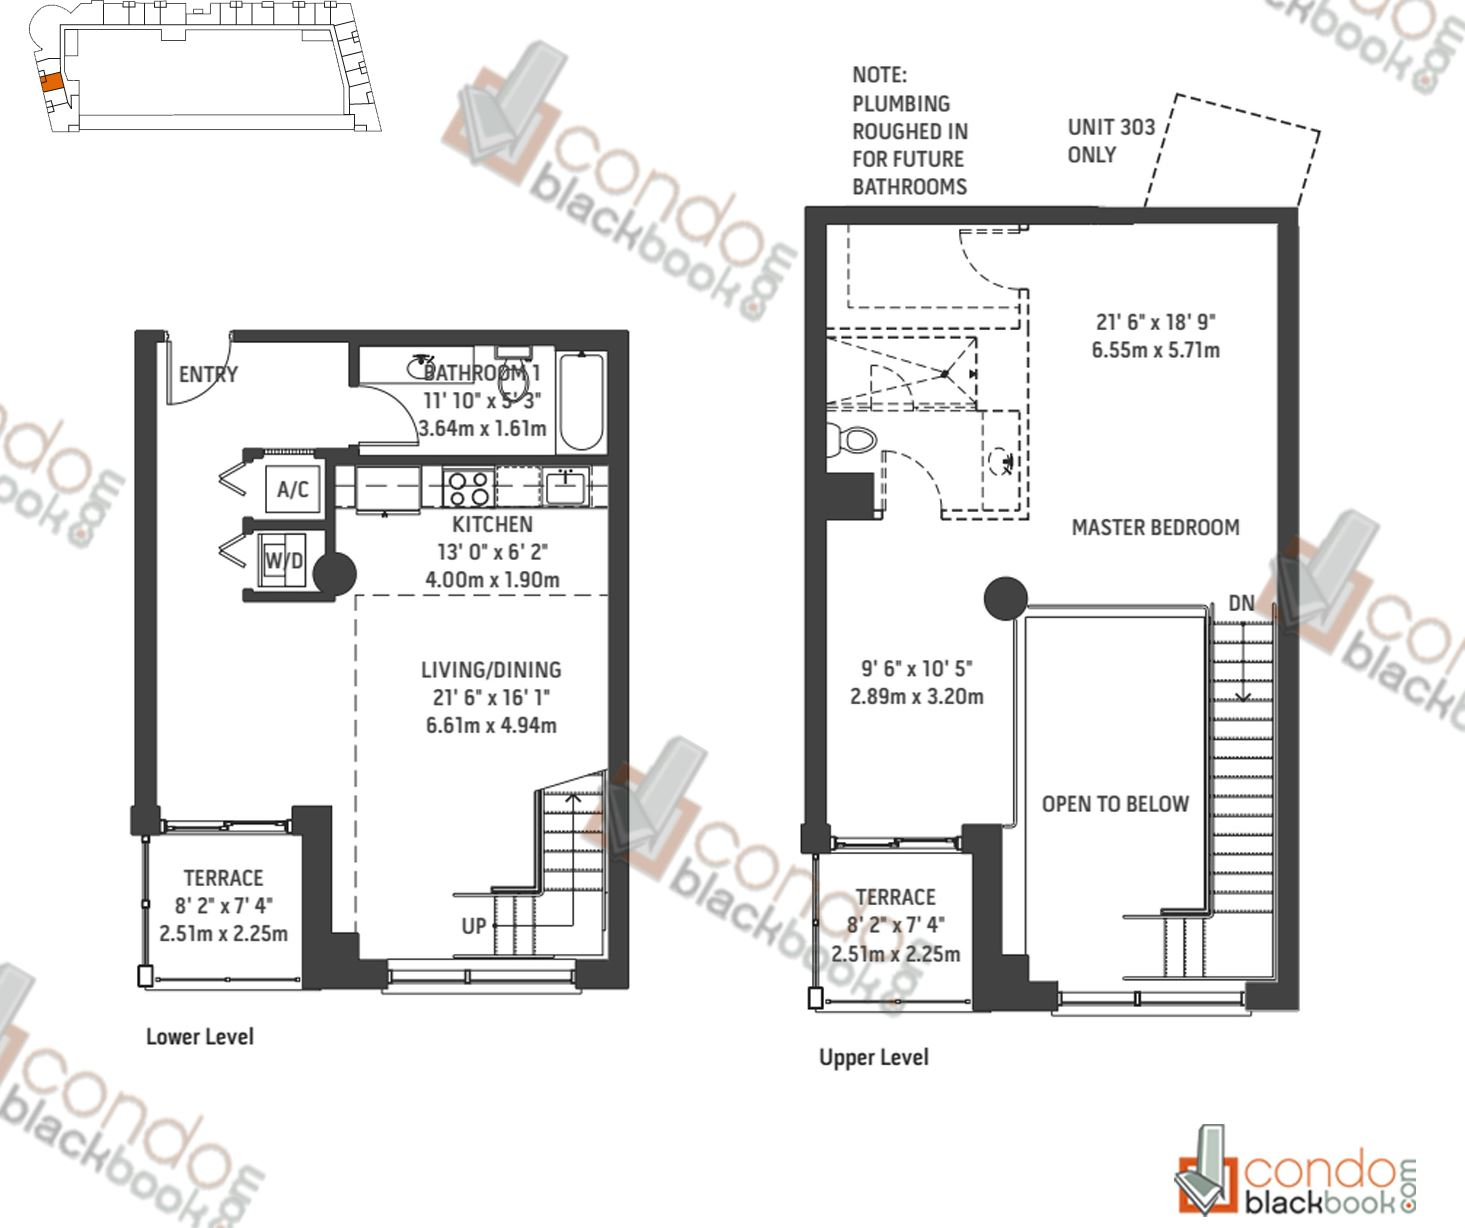 Floor plan for Midblock Condominium Midtown Miami, model Unit L3, line 03, 0/1 bedrooms, 1,272 sq ft